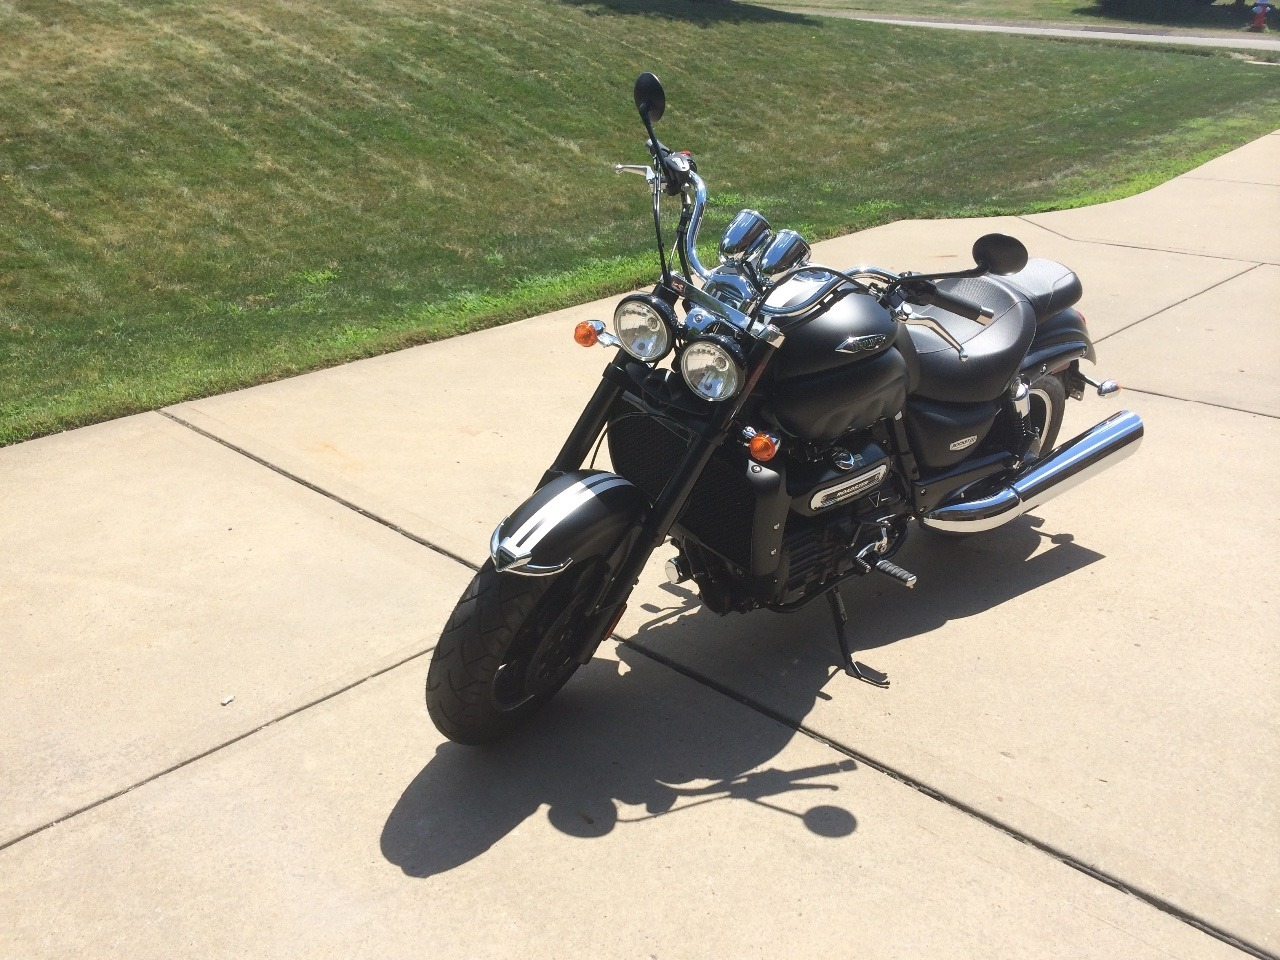 2014 Triumph Rocket III ROADSTER ABS, motorcycle listing